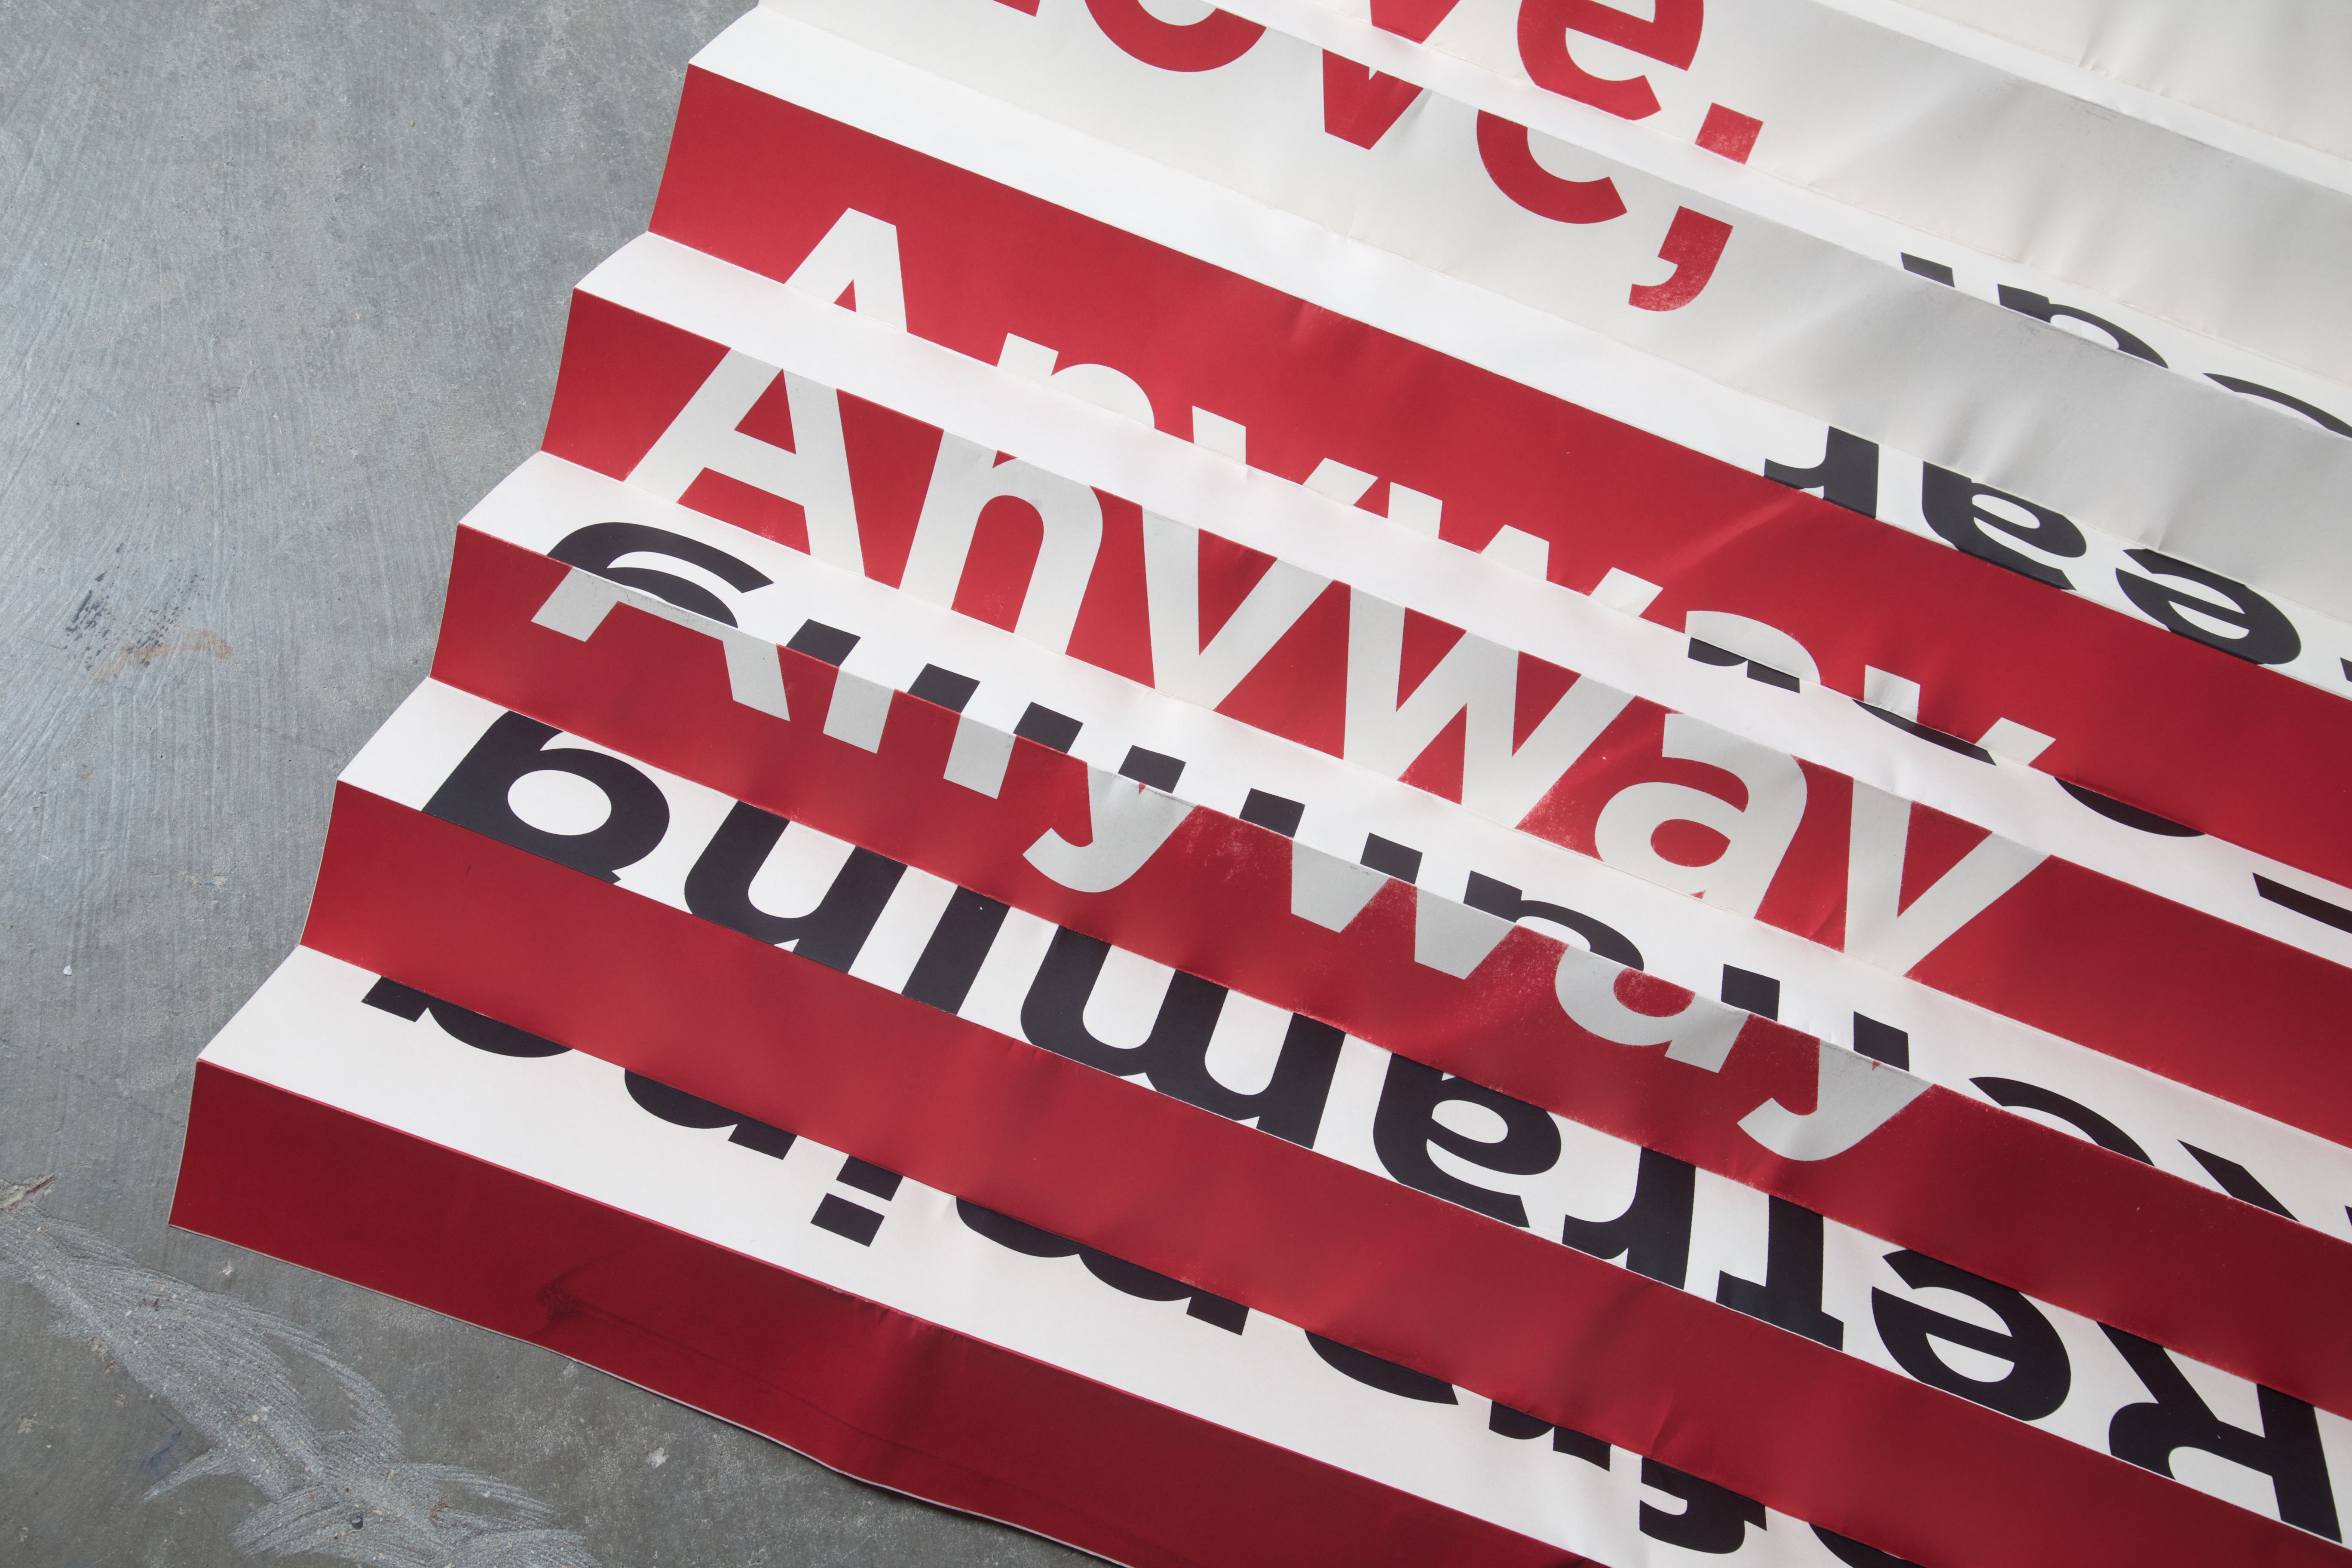 A red and white poster with multiple folds